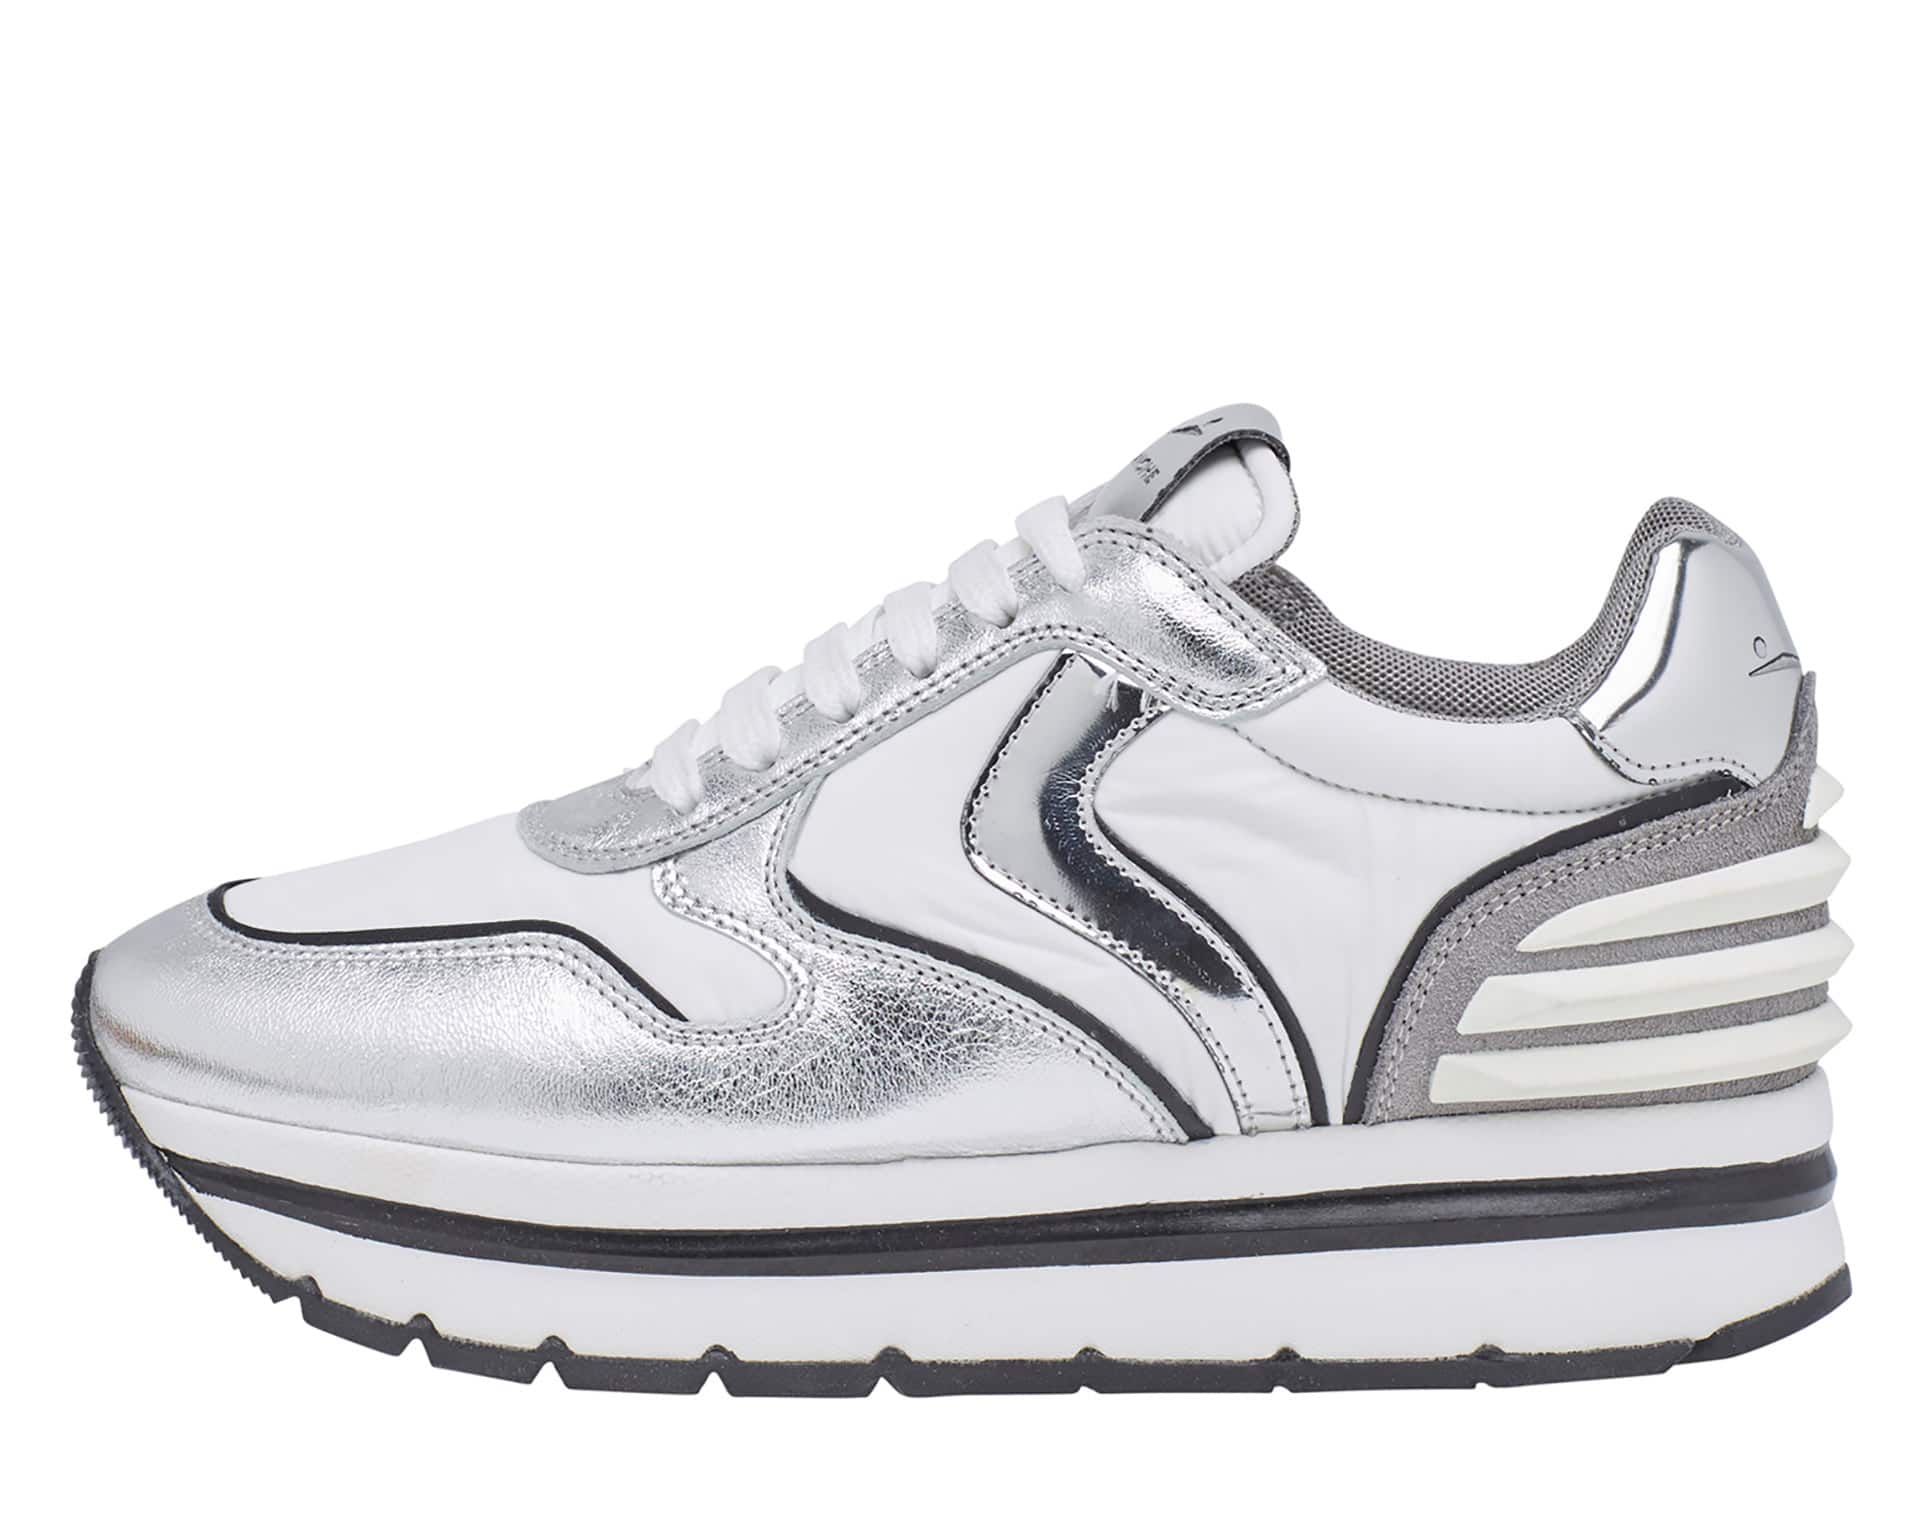 MAY POWER - Sneakers in pelle e tessuto - Bianco/Argento